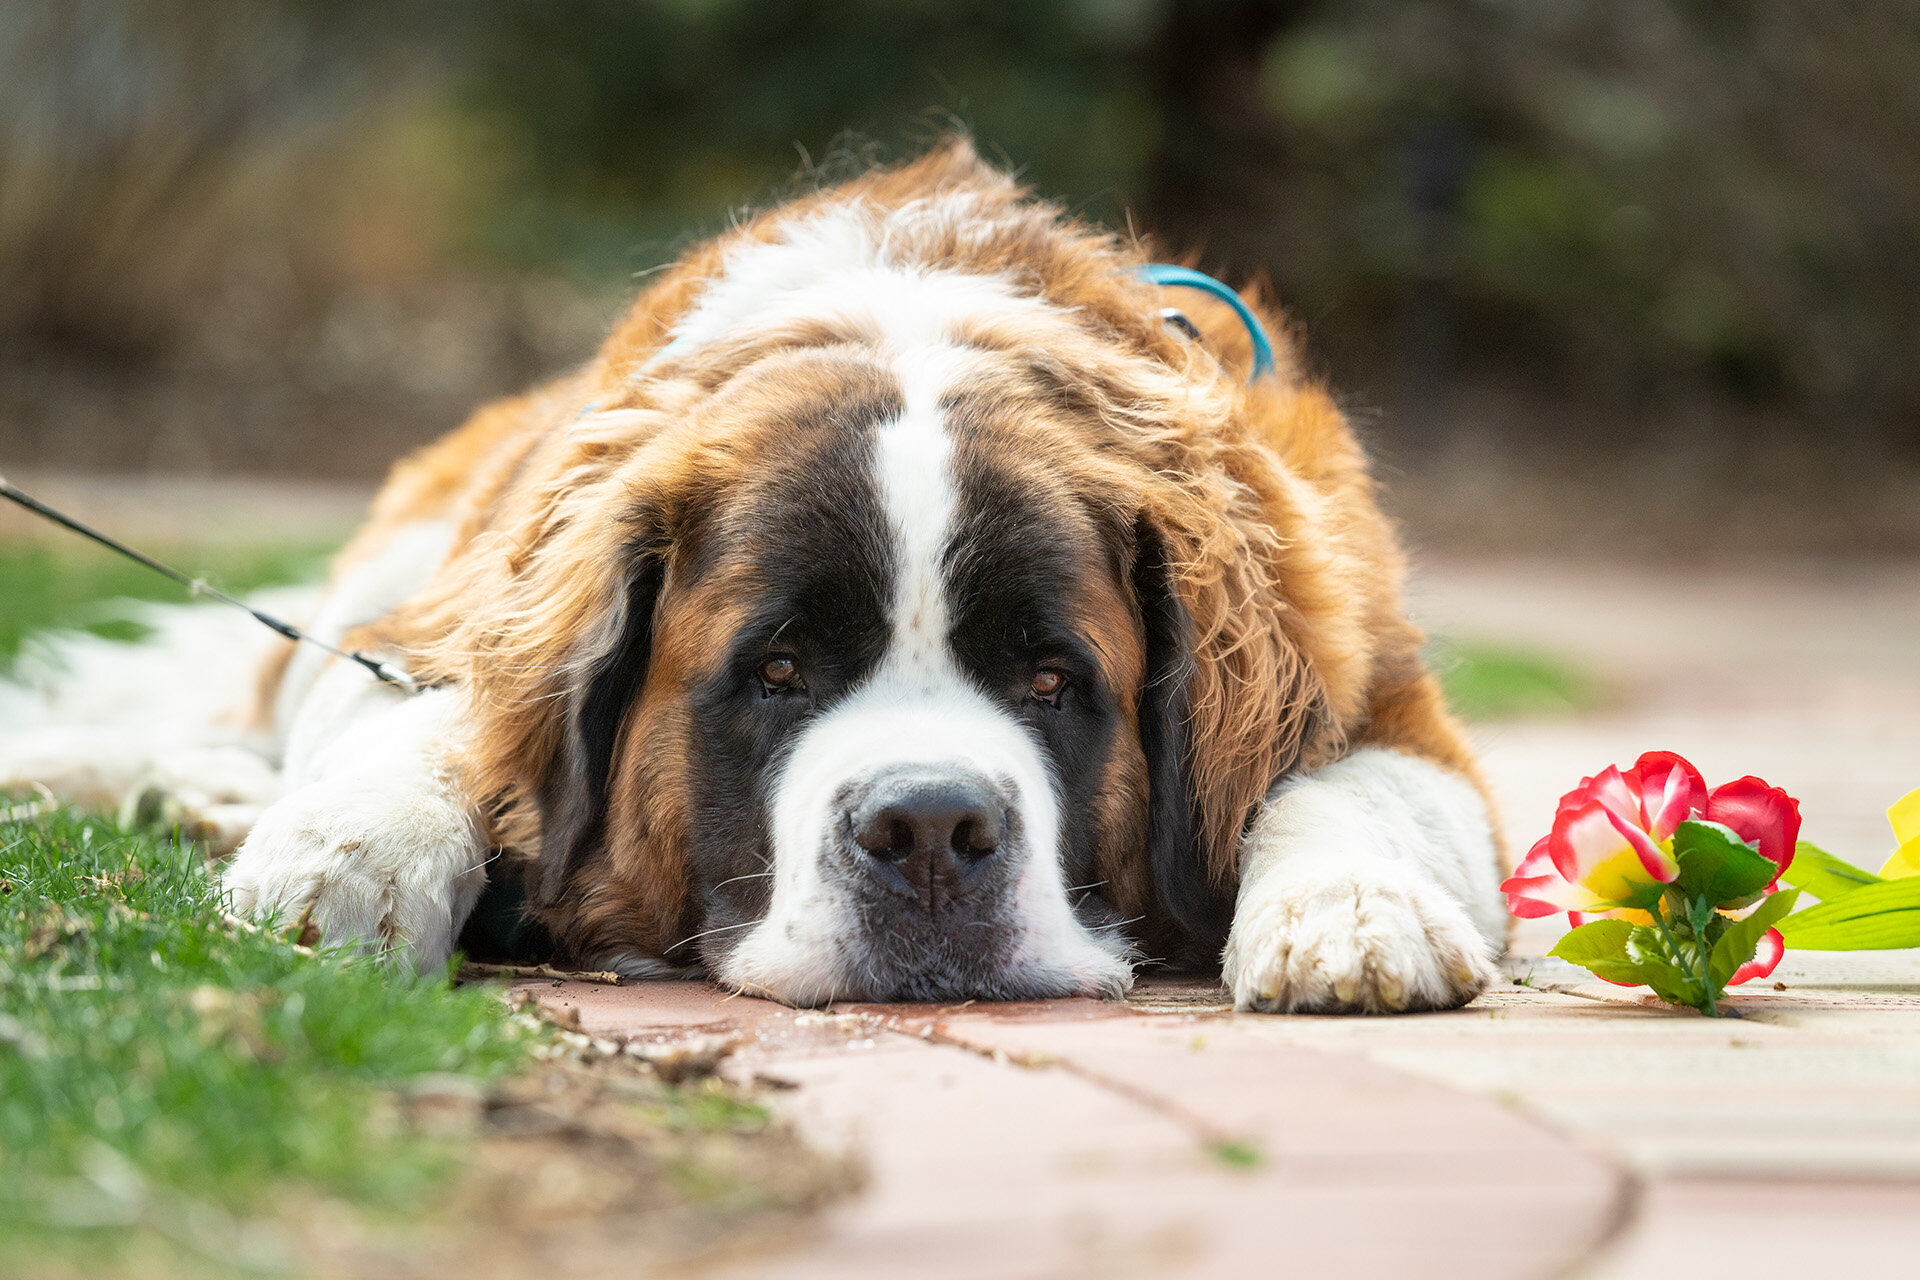 A tangled web: Teasing out the results of CBD on canine seizures